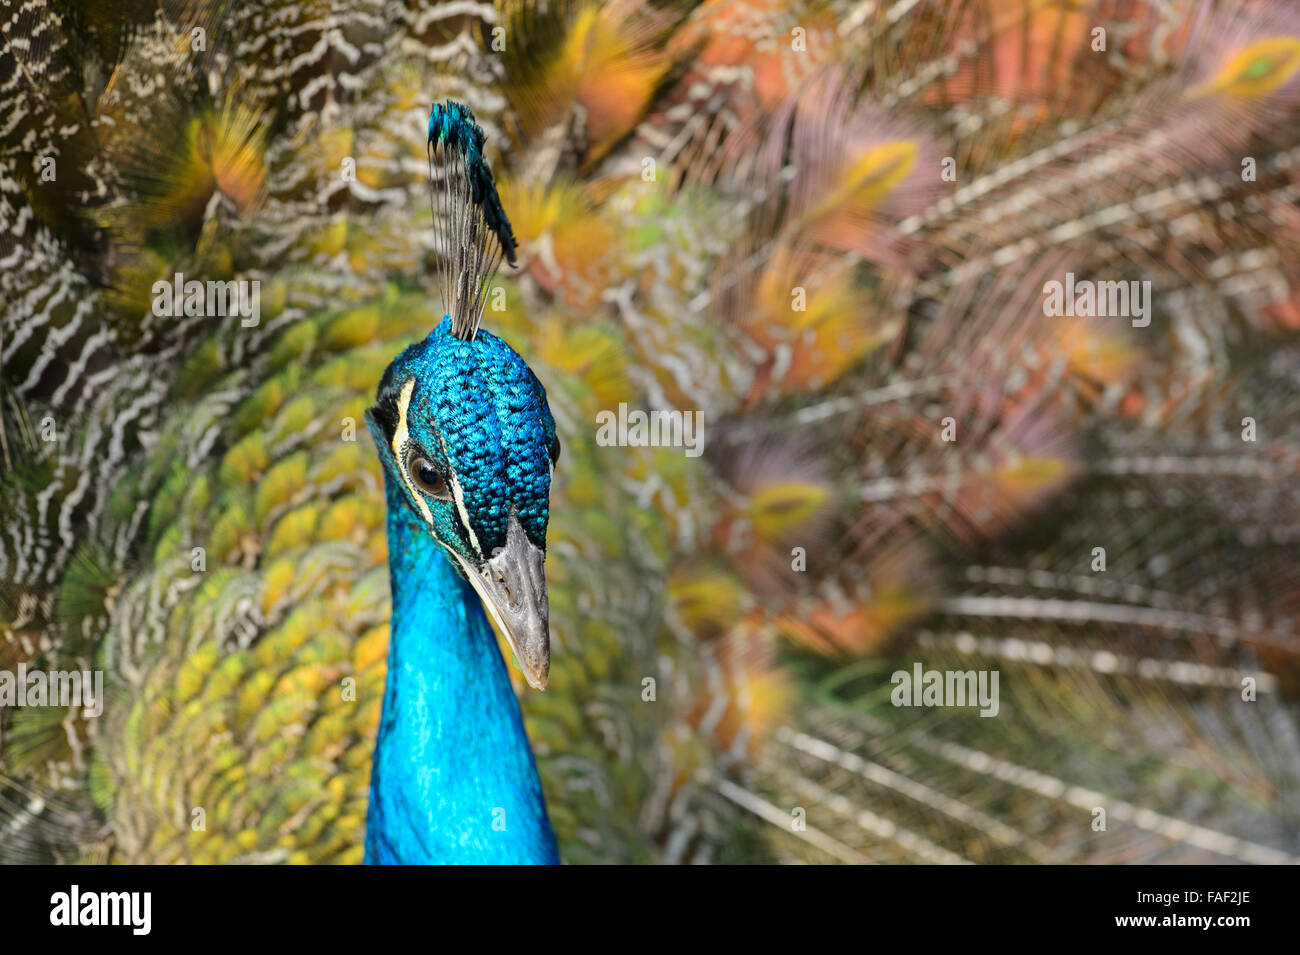 Portrait of a displaying Peacock - Stock Image